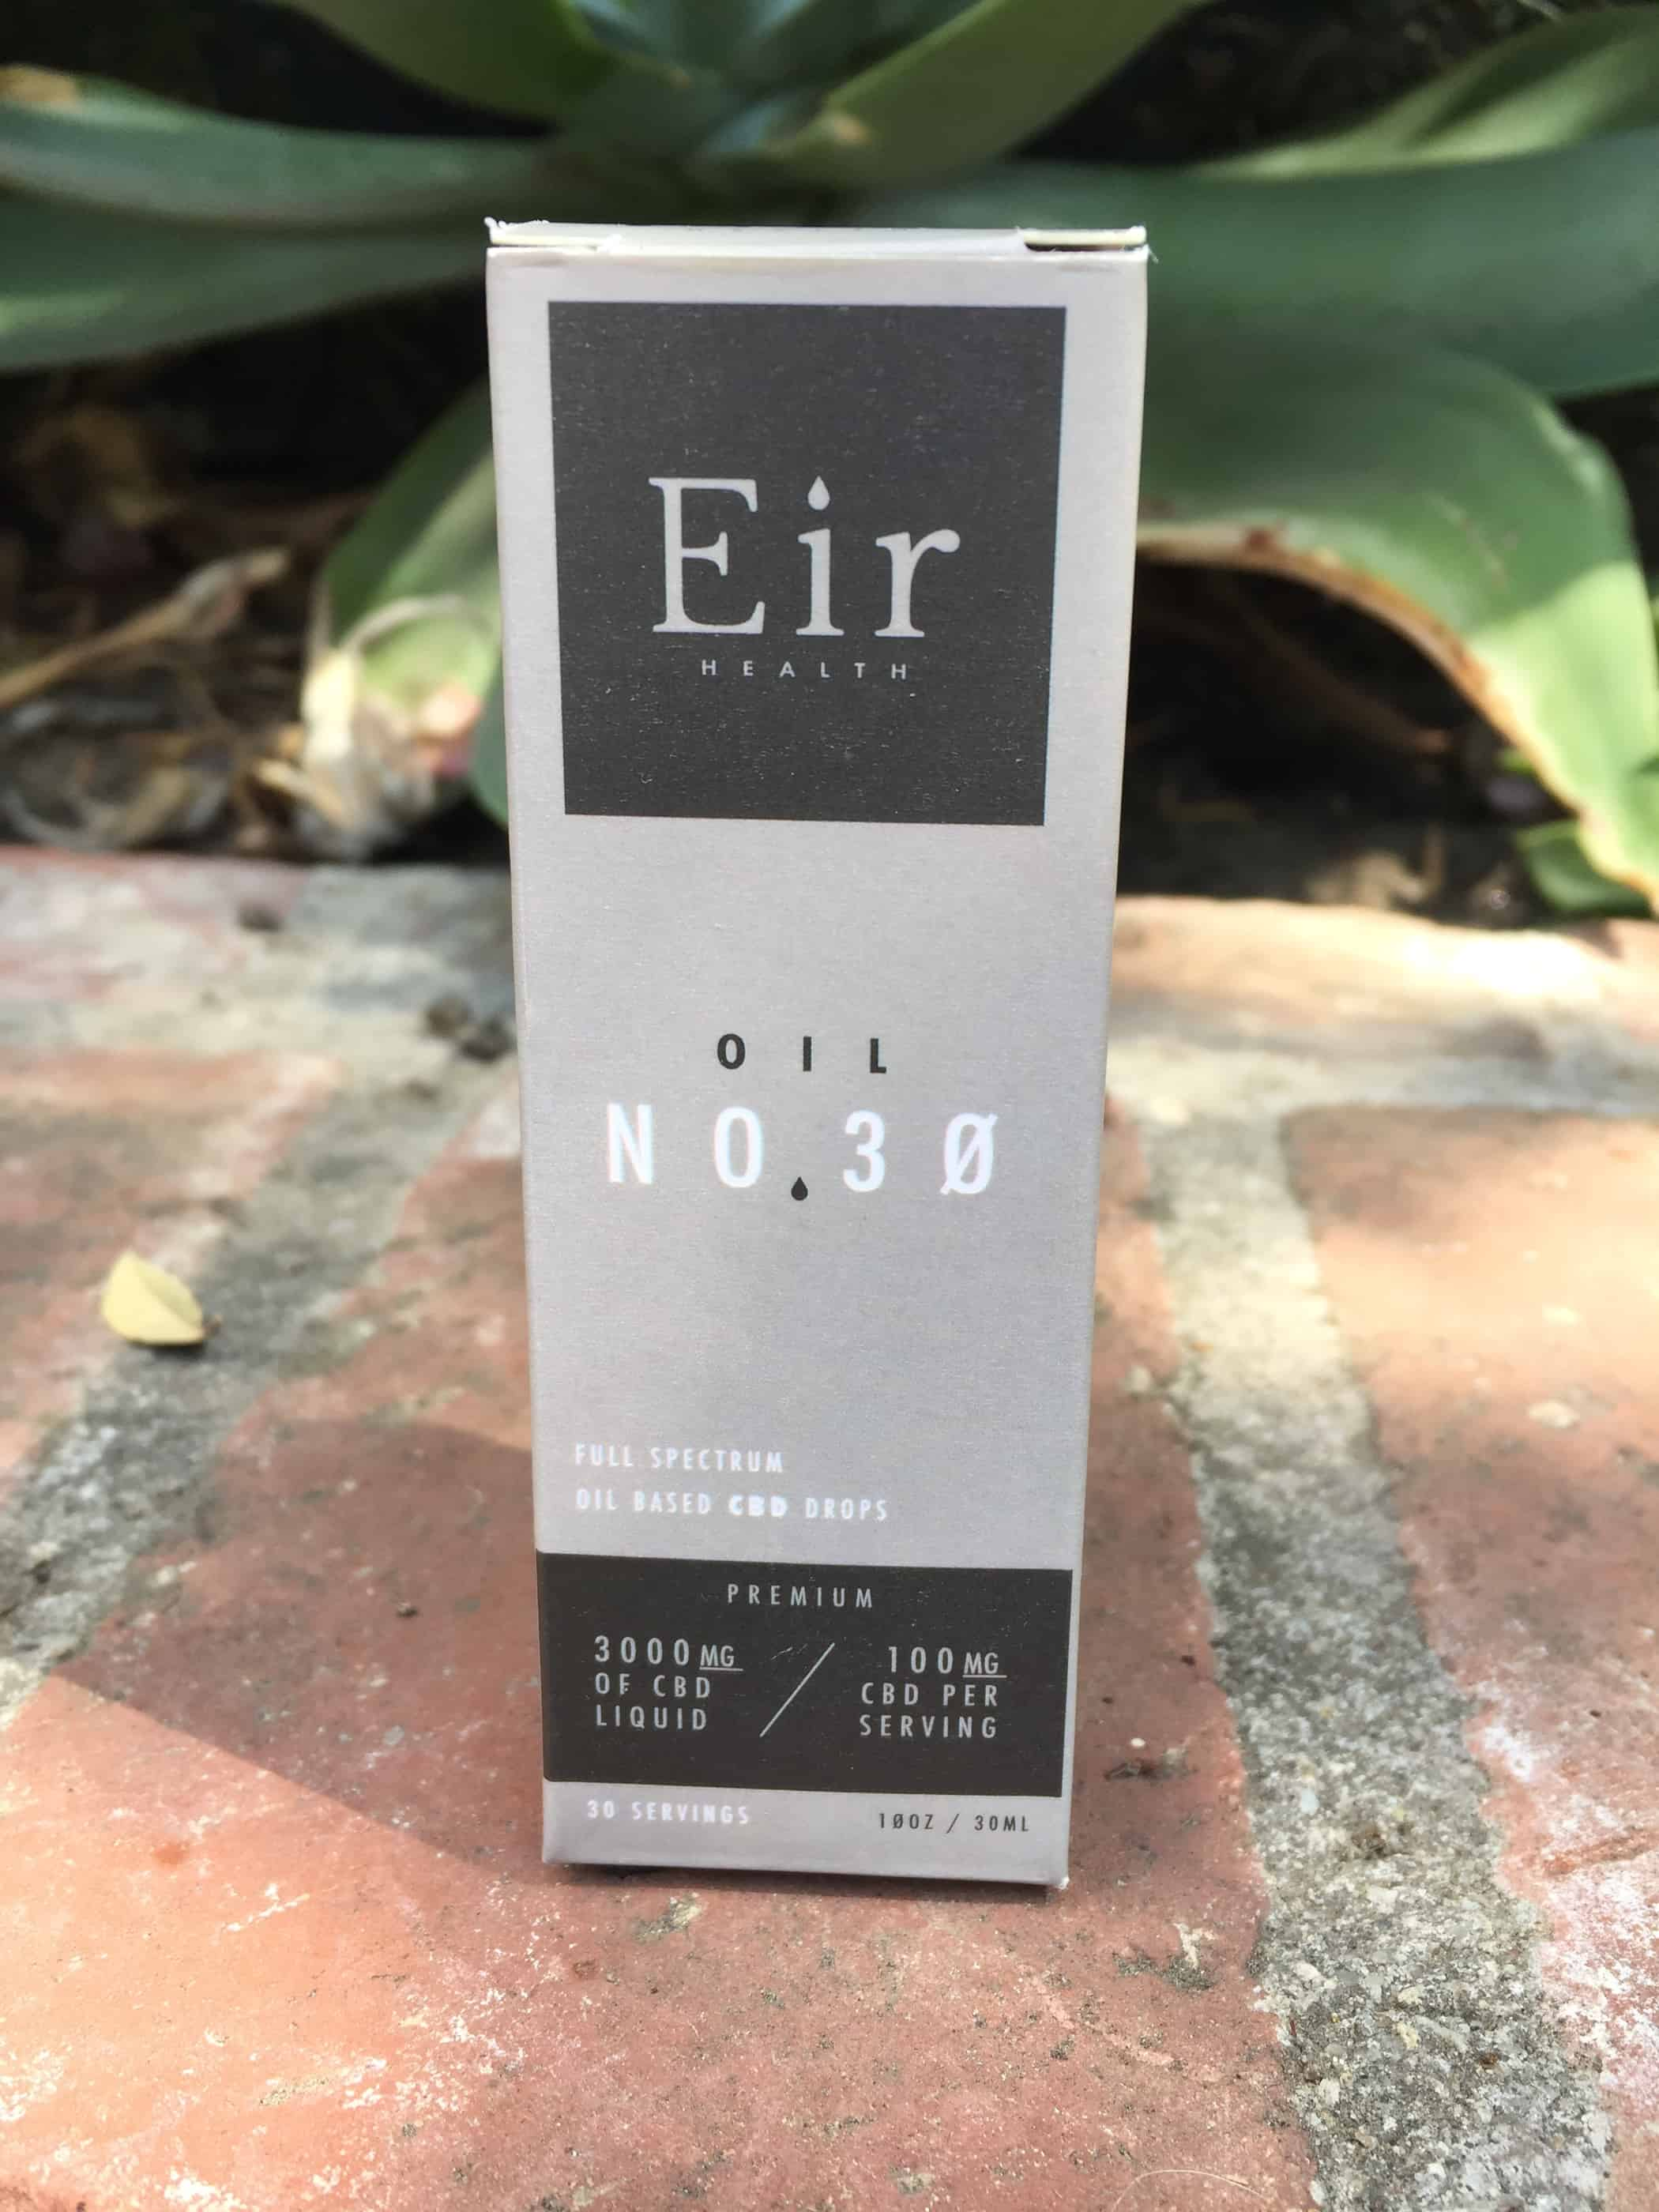 eir health cbd oil 3000 mg review save on cannabis review